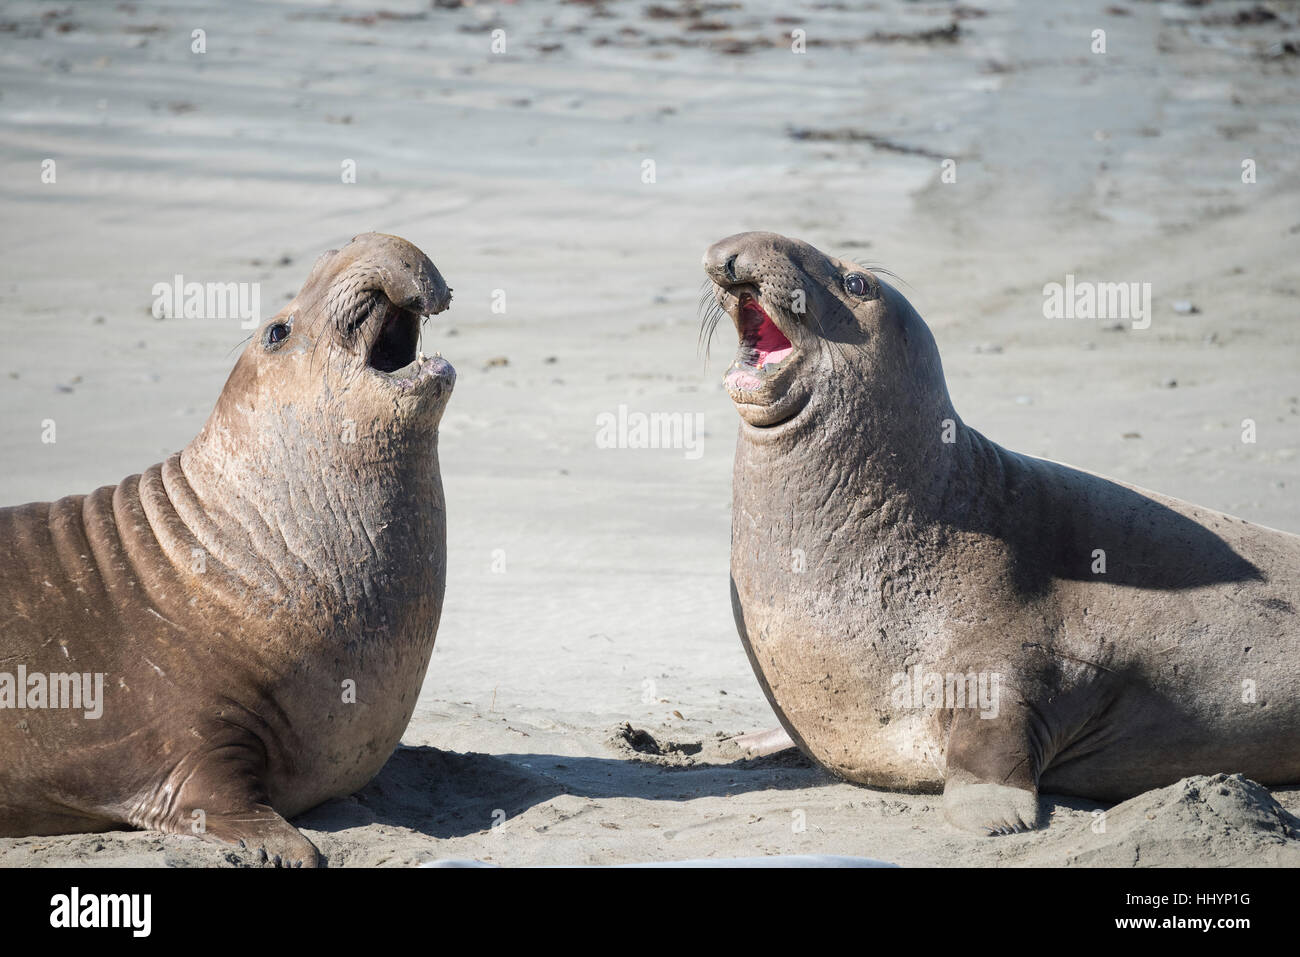 northern elephant seals, Mirounga angustirostris, young males sparring for dominance, practicing for later battles, - Stock Image